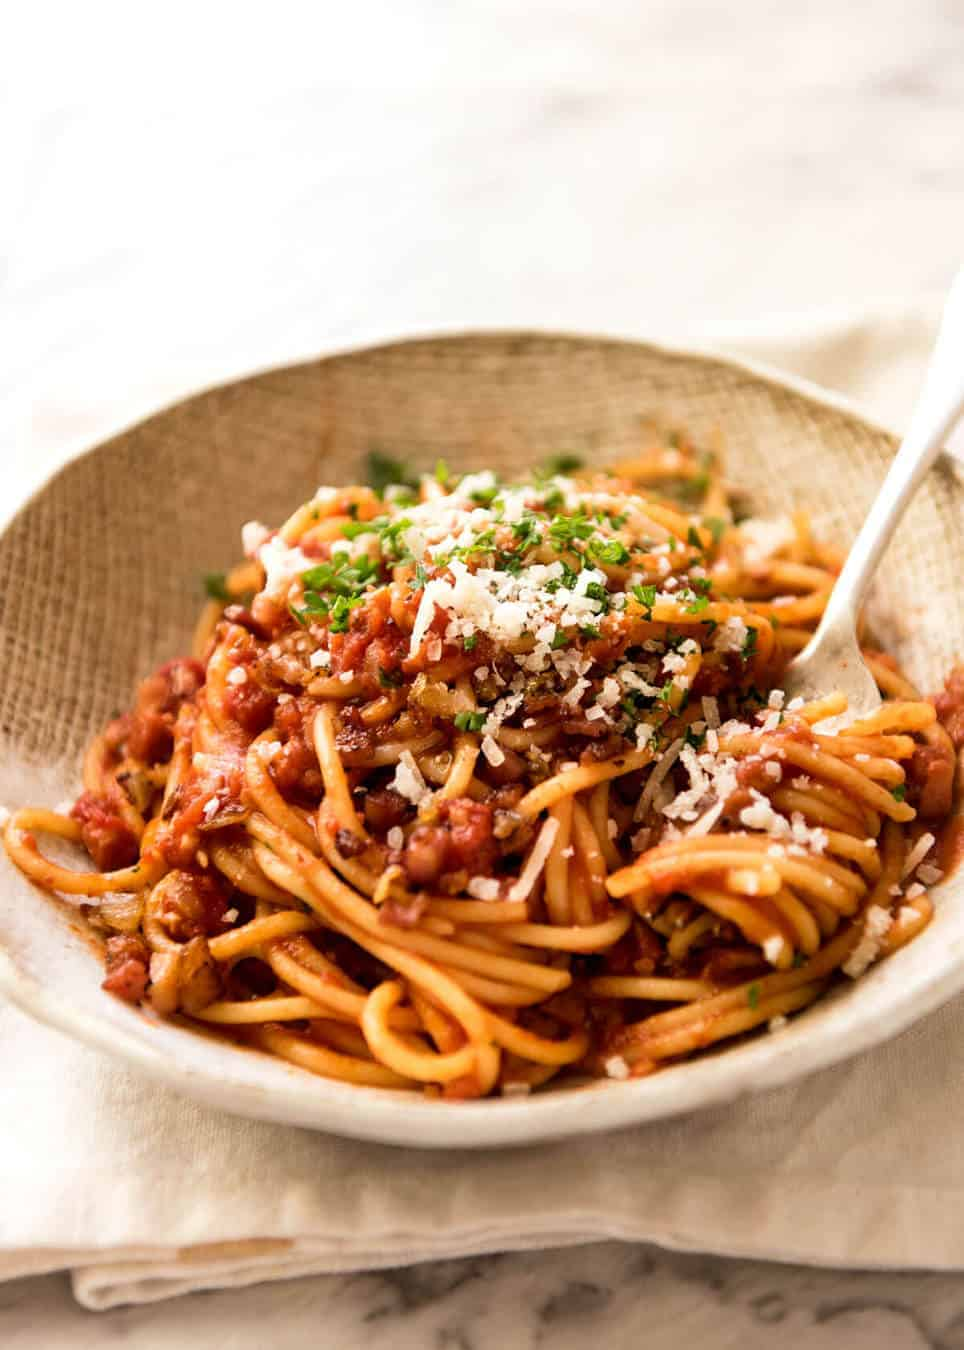 Simplicity at its best - Bacon Tomato Pasta. 5 ingredients. Utterly irresistible. recipetineats.com